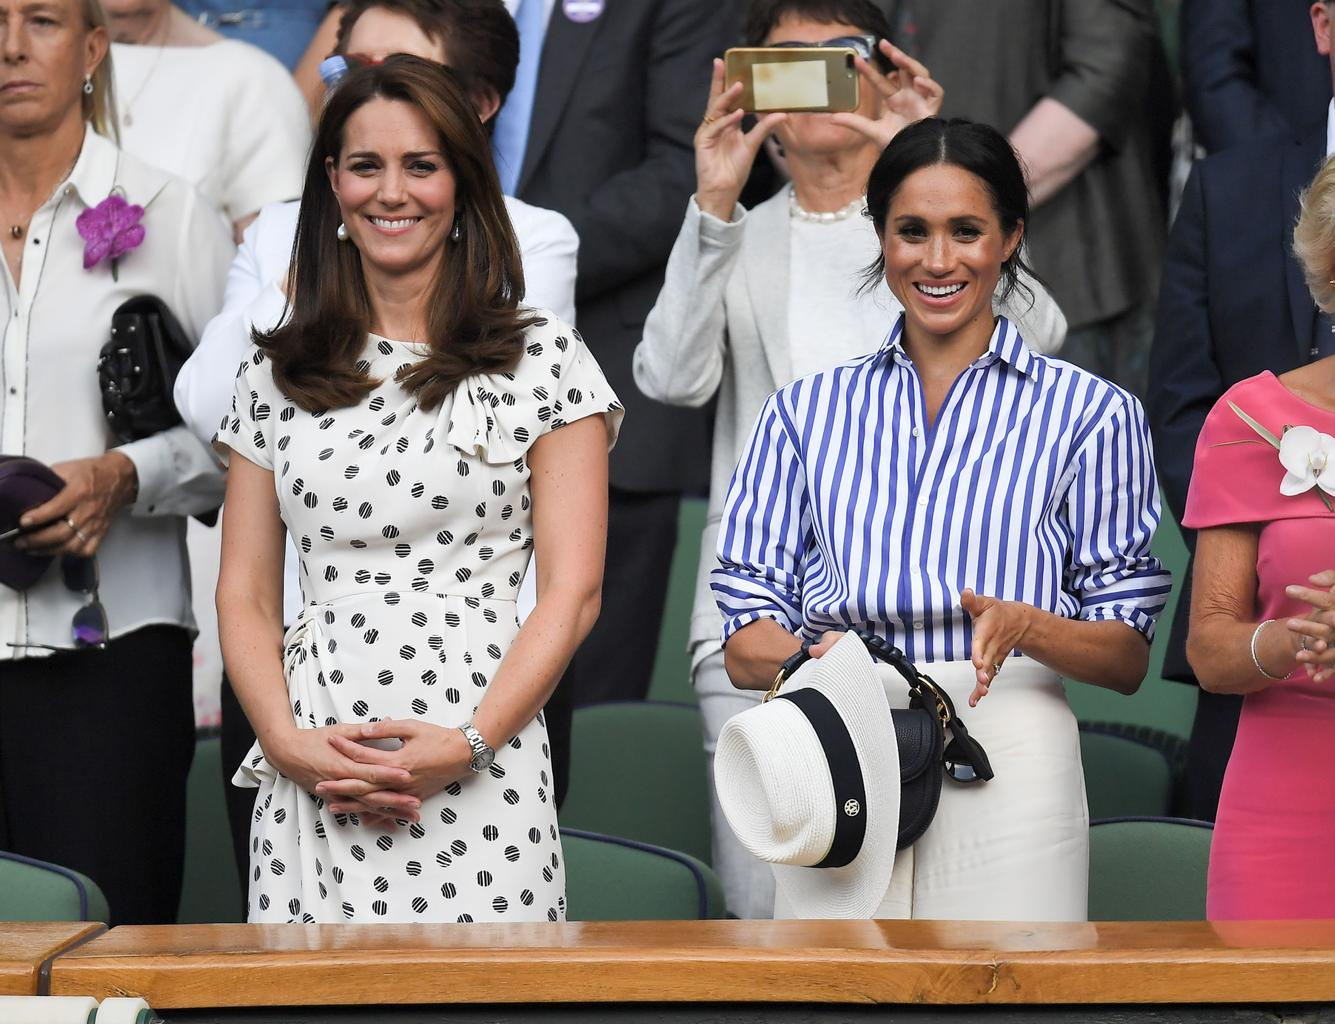 Meghan Markle, Kate Middleton feud: Kensington Palace issues statement